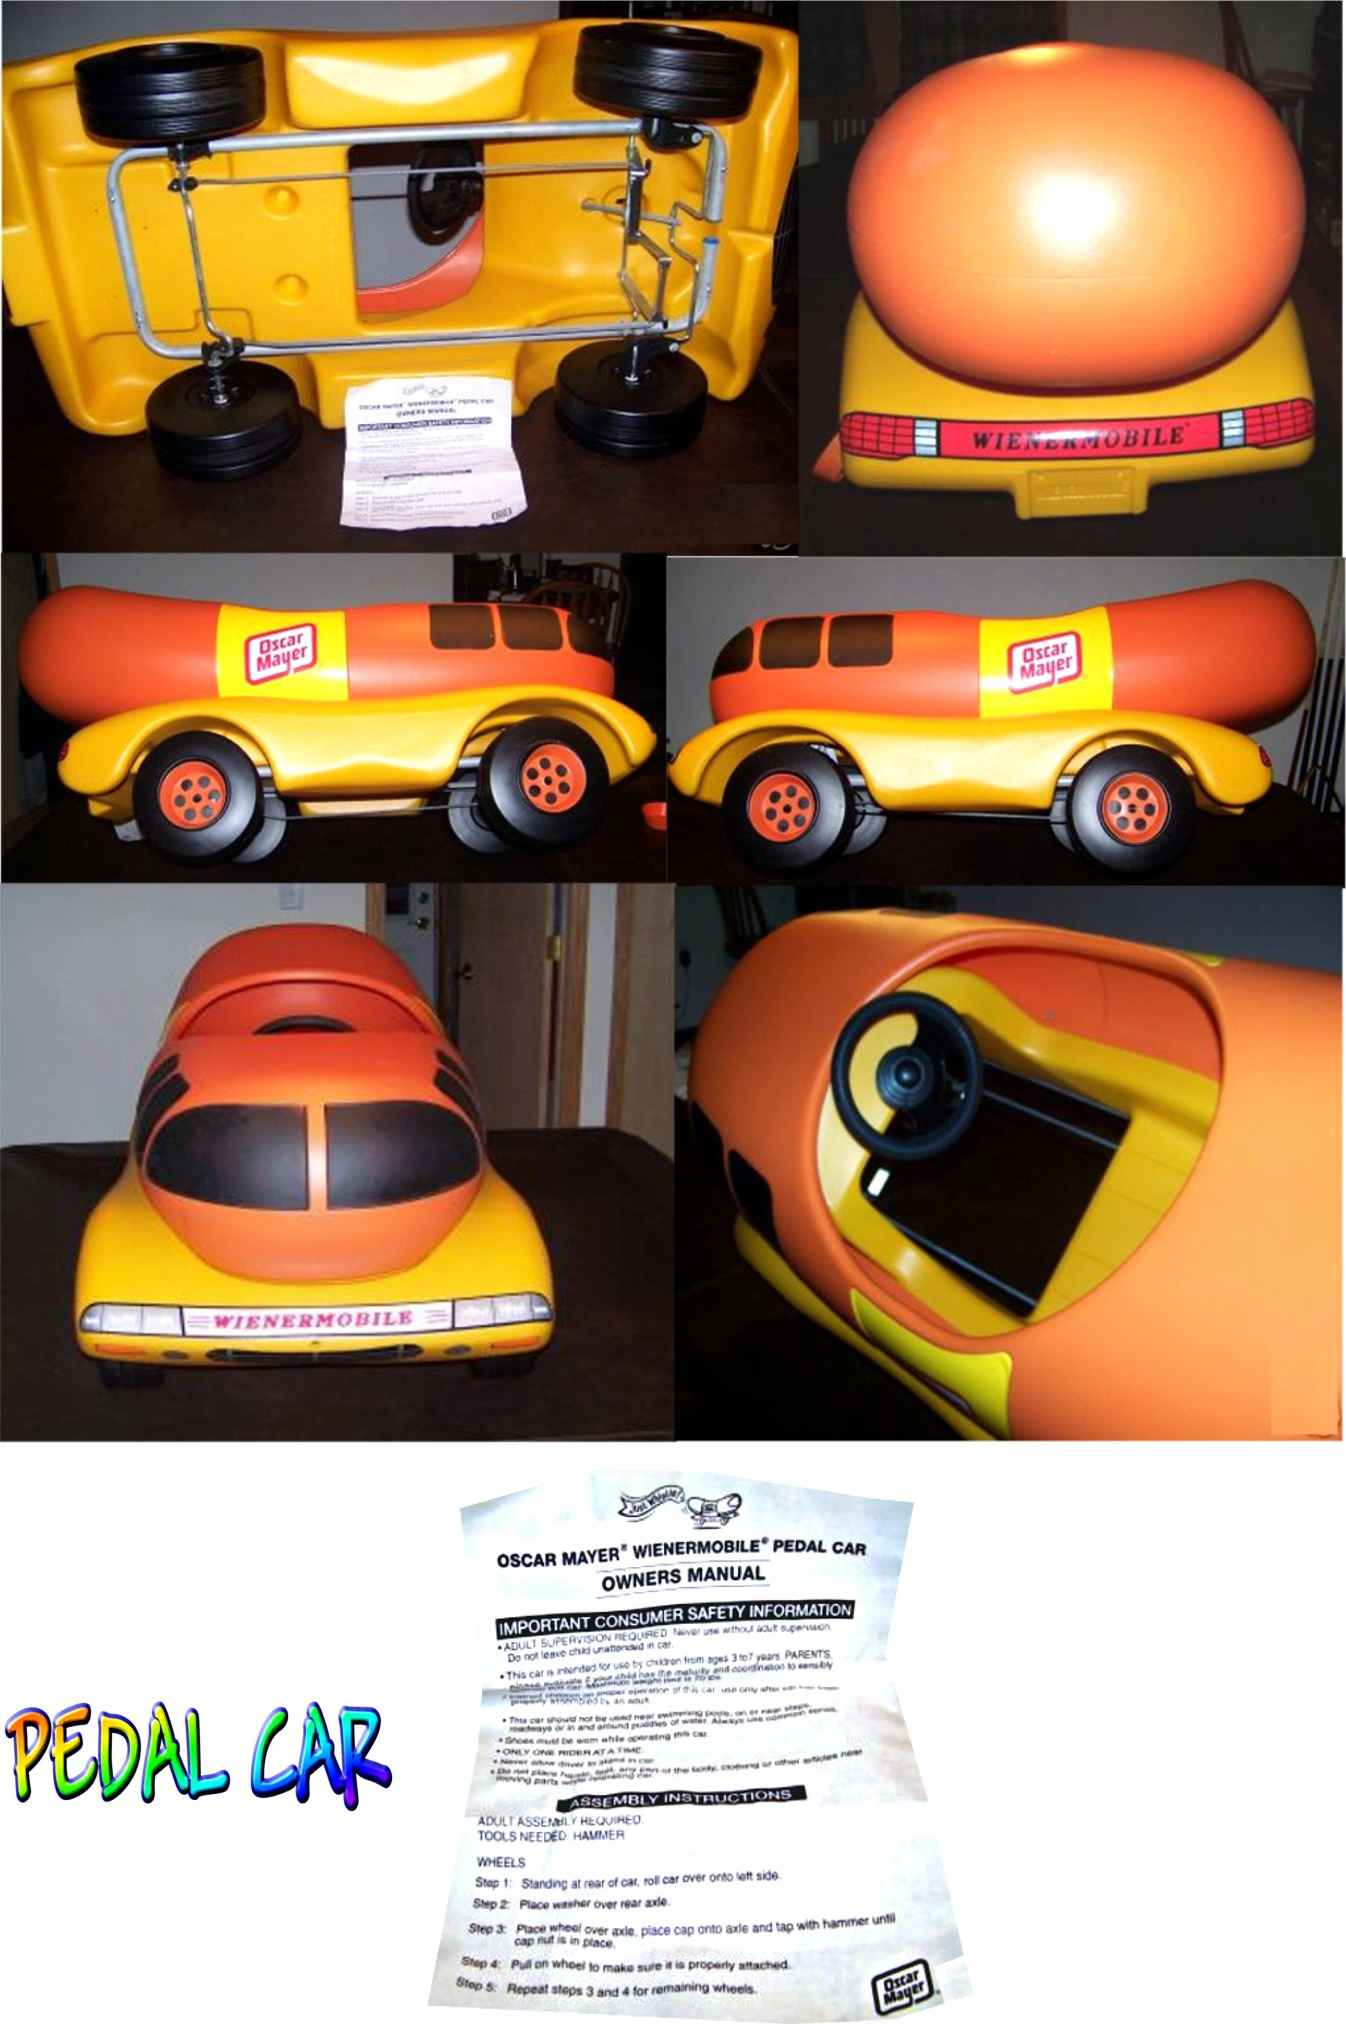 249457266830314573 as well 165155511309644091 likewise Oscar Mayer Wienermobile Front Side View further Oscar mayer collectables items For sale page01 moreover File Wienermobile Bologna. on oscar meyer weiner truck for sale